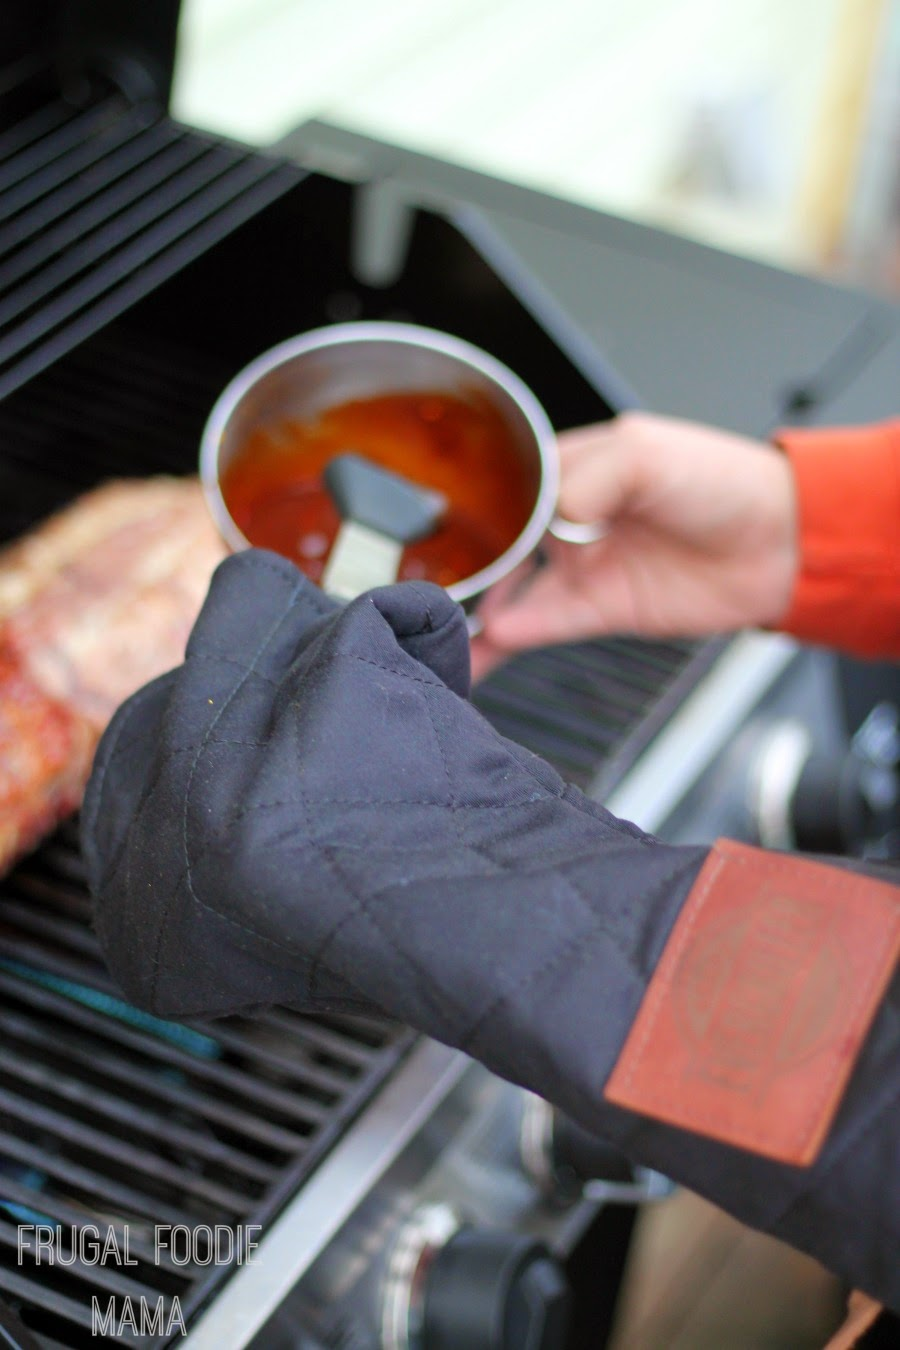 Evergriller Grill 'N' Flip Mitt is specifically designed to not only be fire resistant, but to also protect grillers' hands from the cold of the winter grilling season. #Evergriller #sponsored